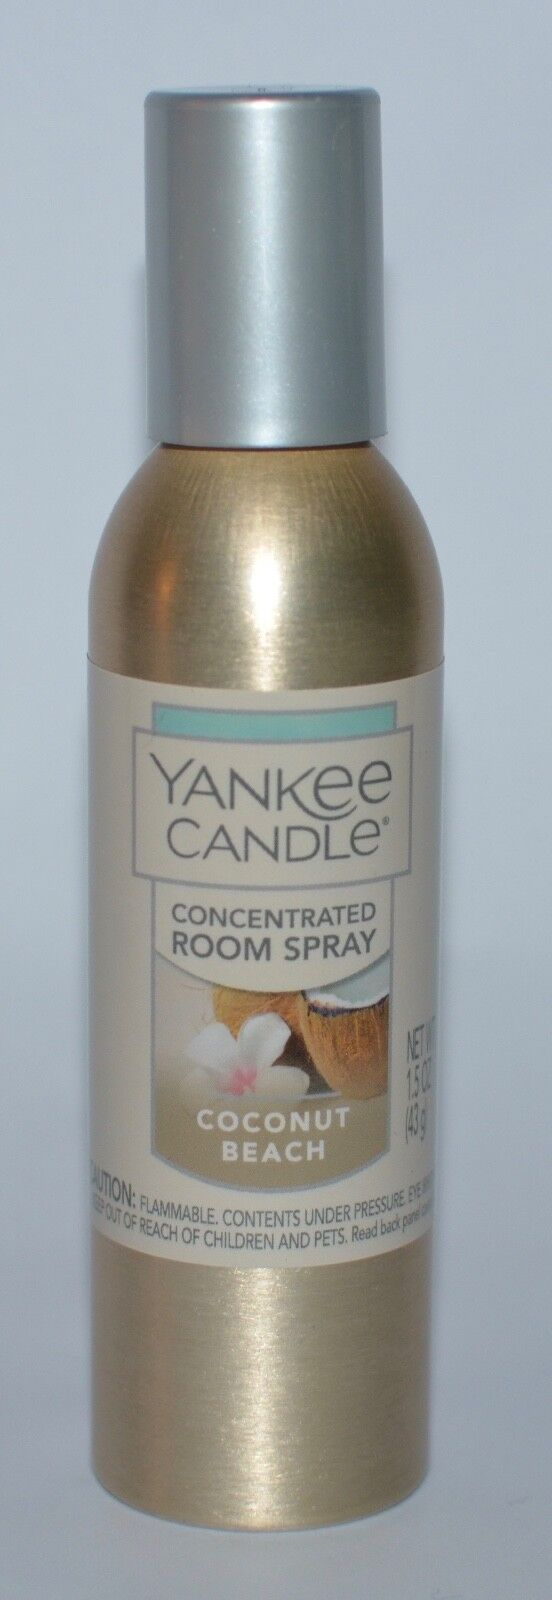 Yankee Candle Coconut Beach Concentrated Room Spray, Fresh S